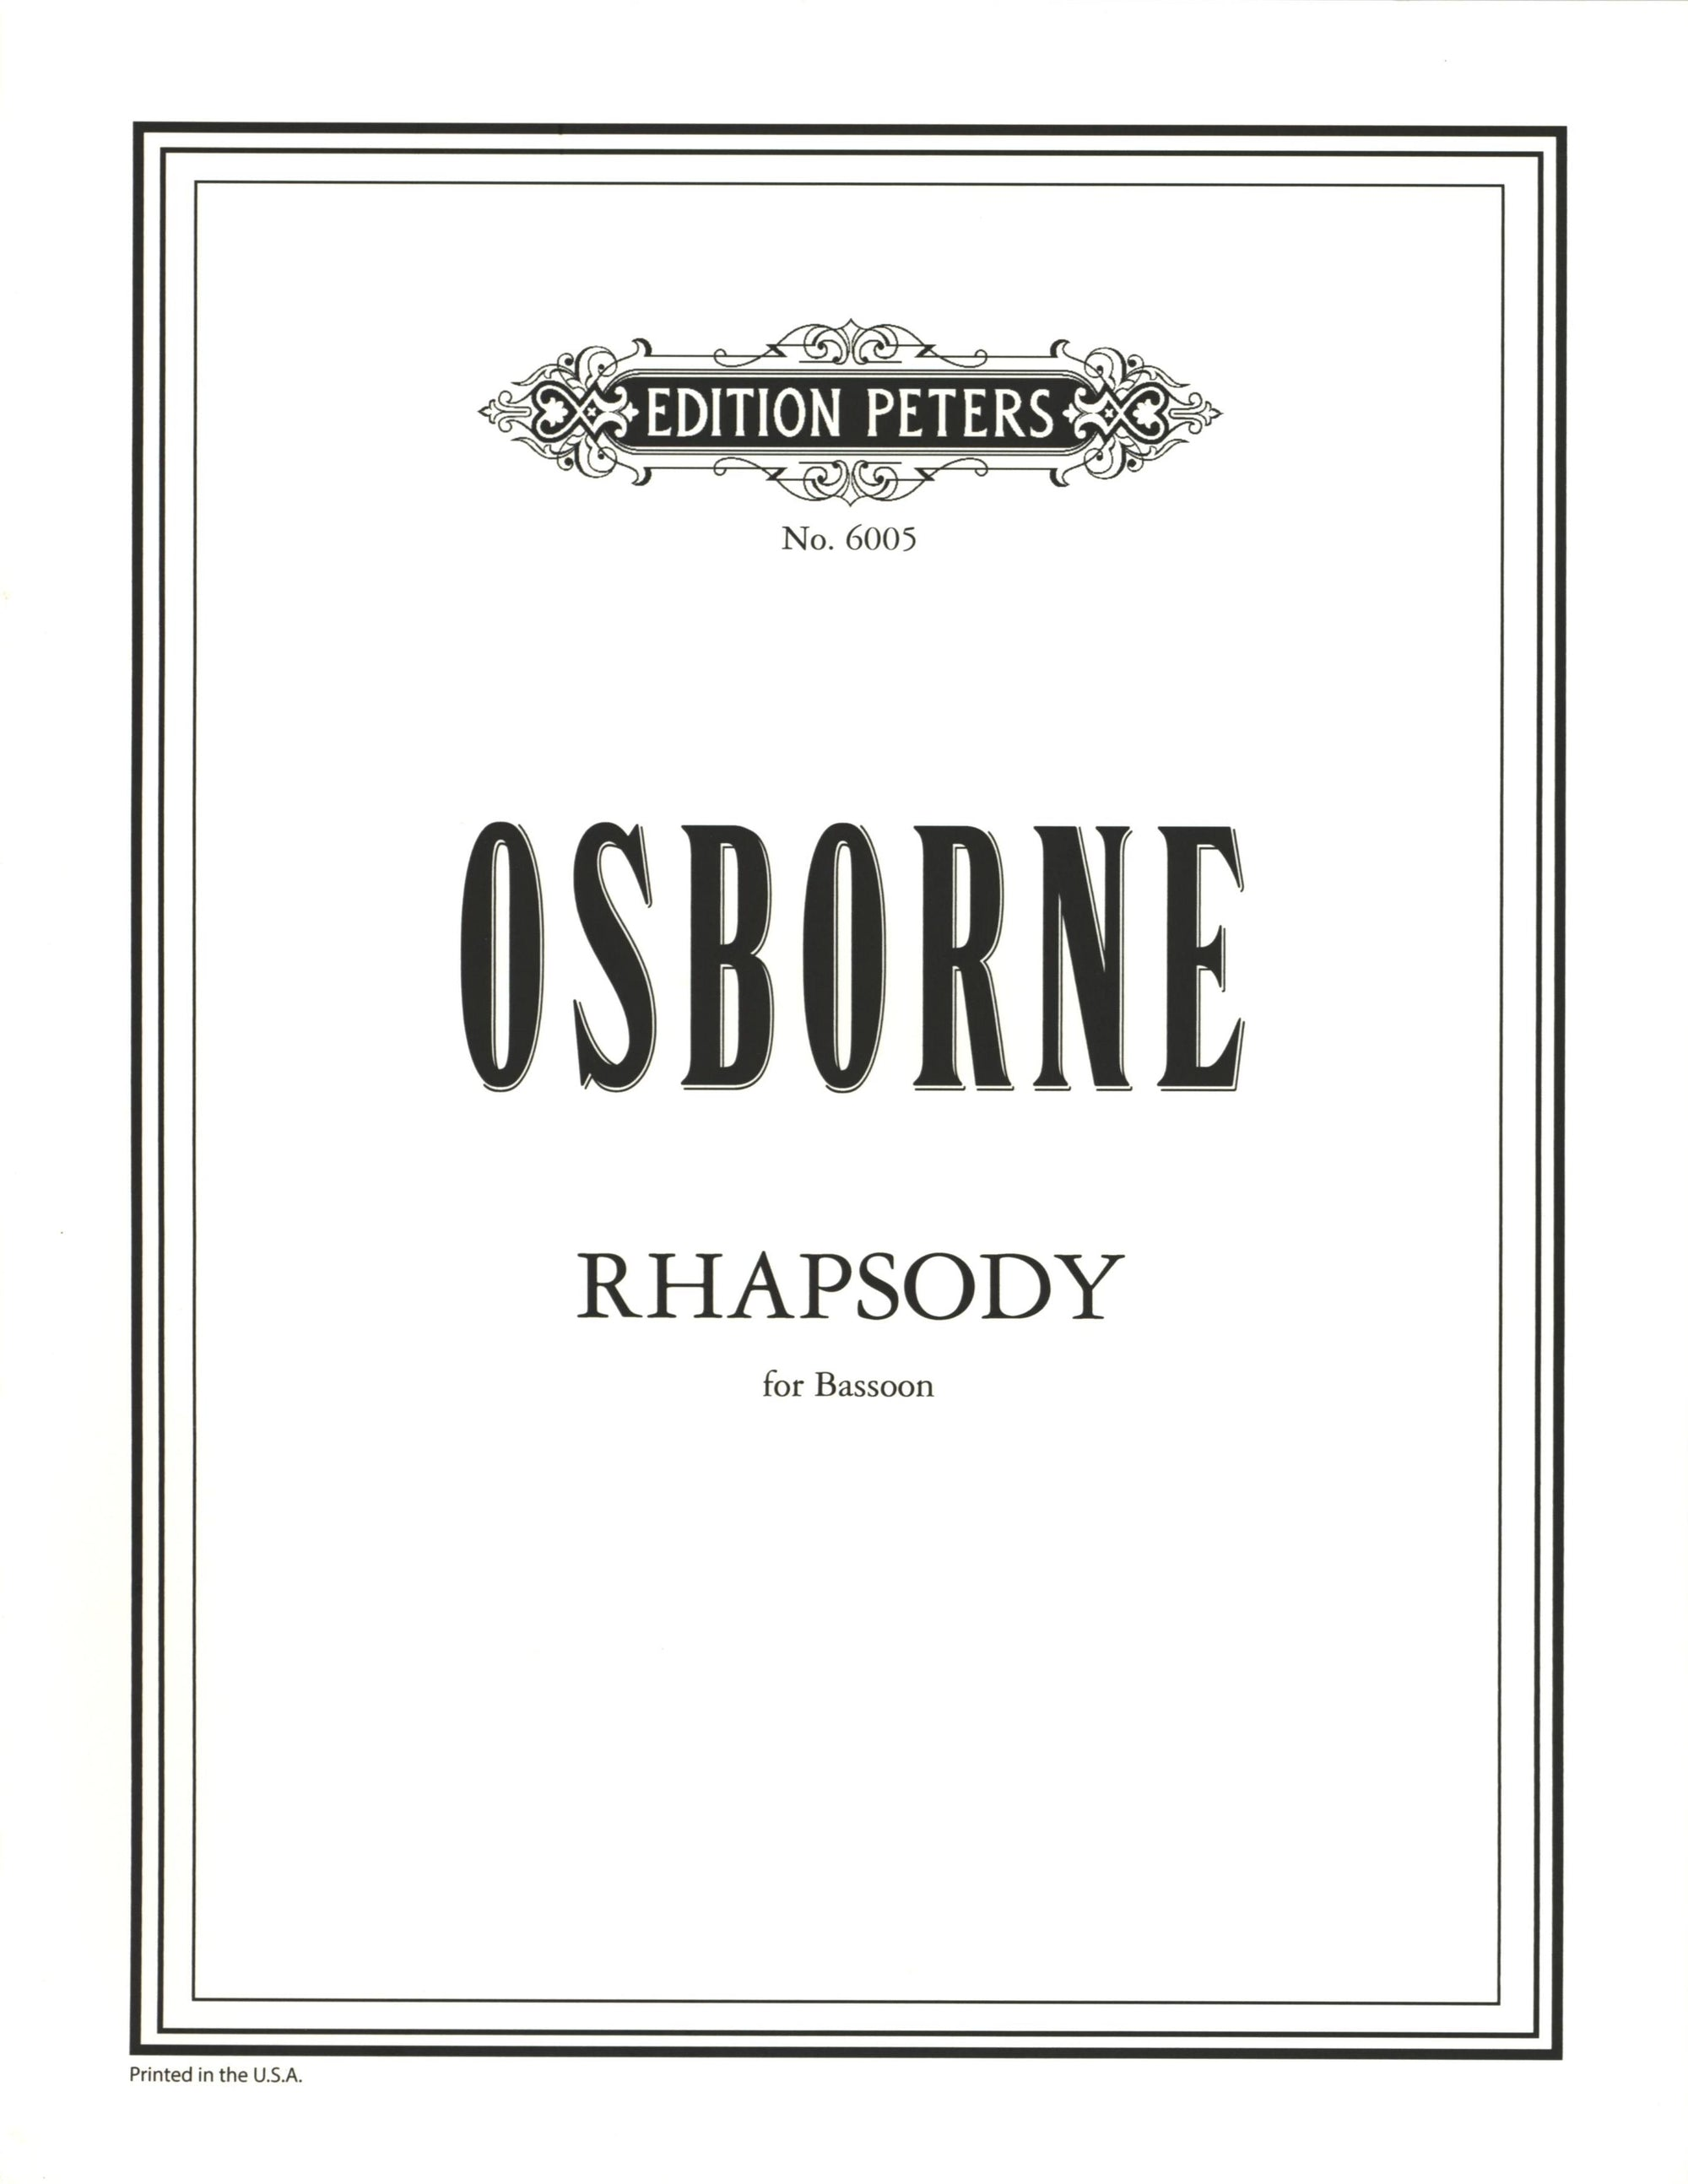 Osborne: Rhapsody for Bassoon